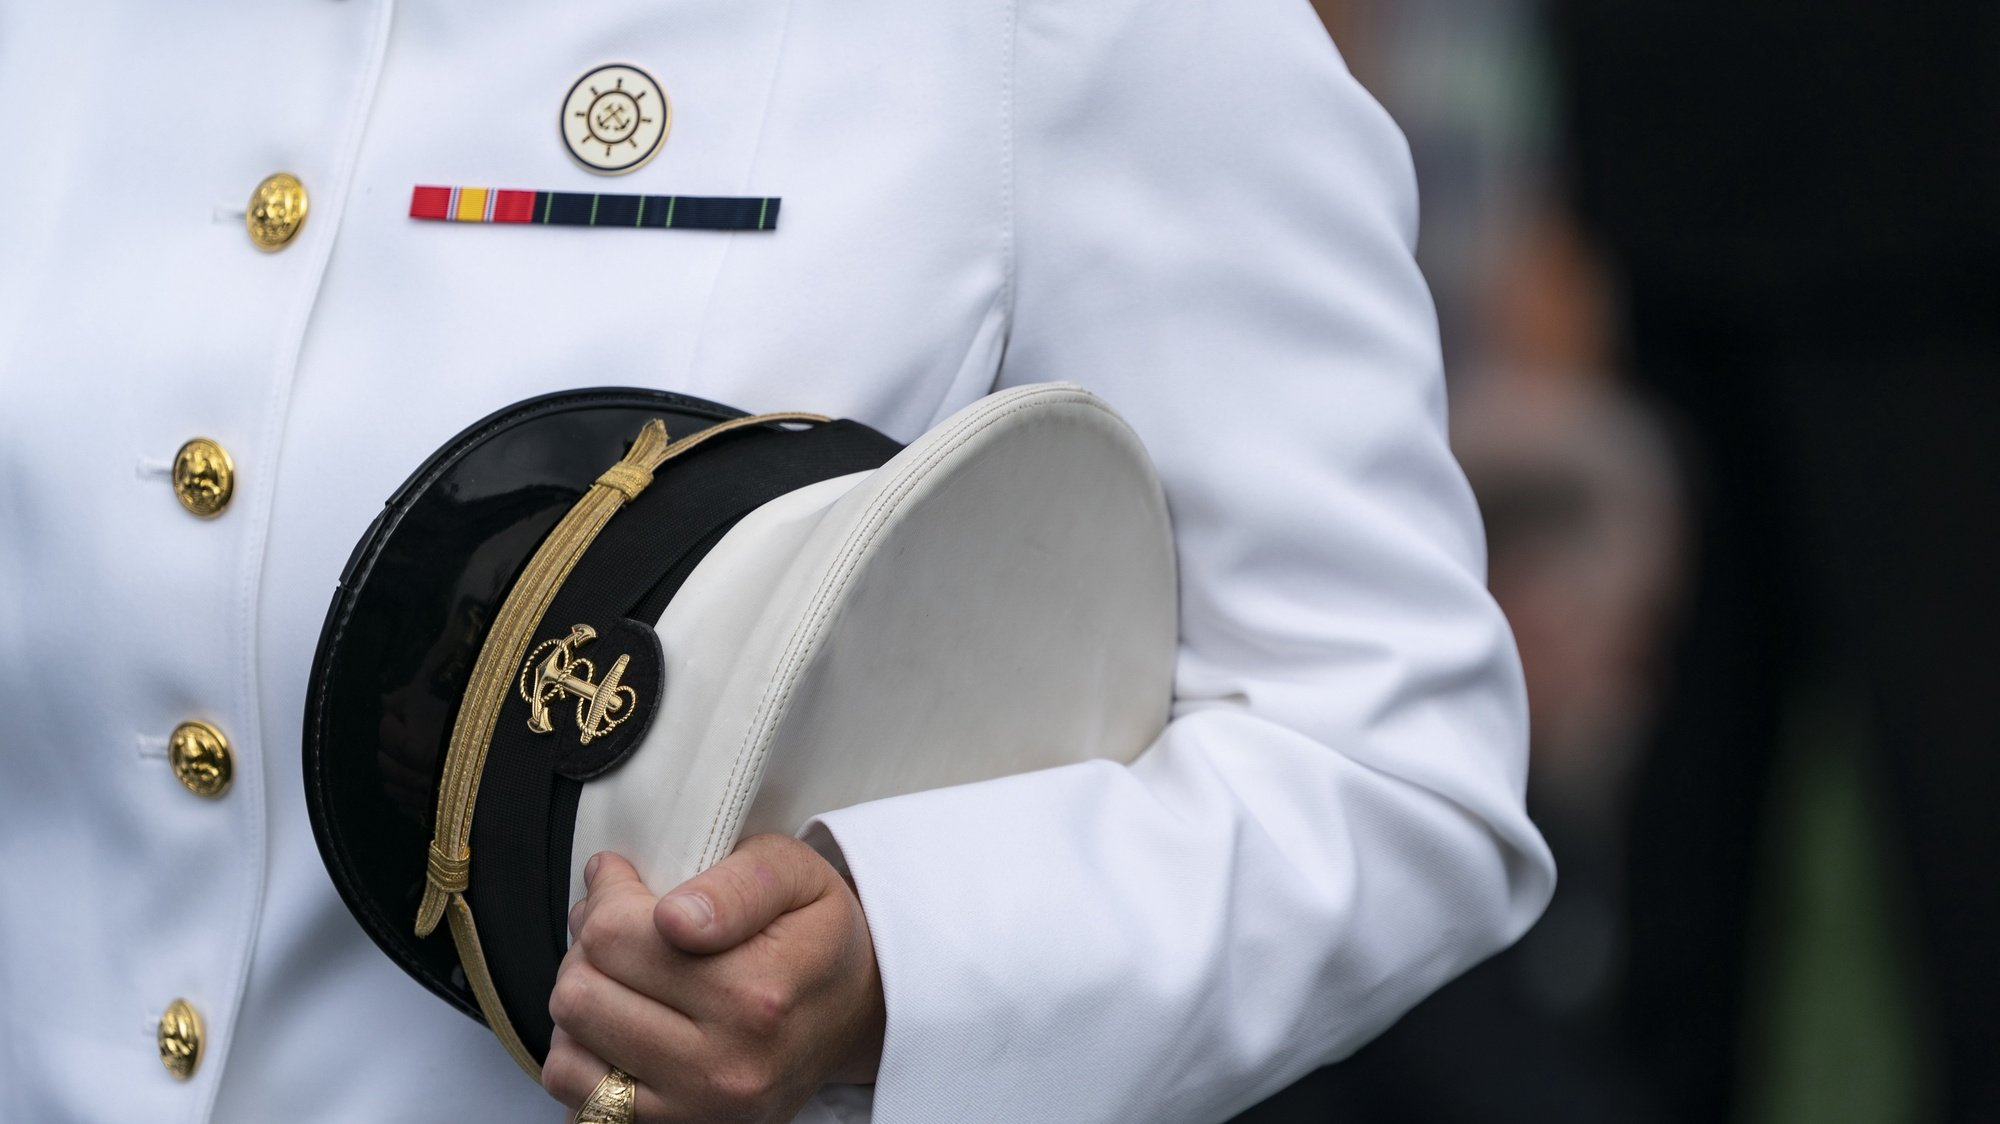 epa09234041 An unidentified Midshipman holds his US Capitol during the United States Naval Academy Class of 2021 graduation and commissioning ceremony held at Navy-Marine Corps Memorial Stadium in Annapolis, Maryland, USA, 28 May 2021.  EPA/Alex Edelman / POOL